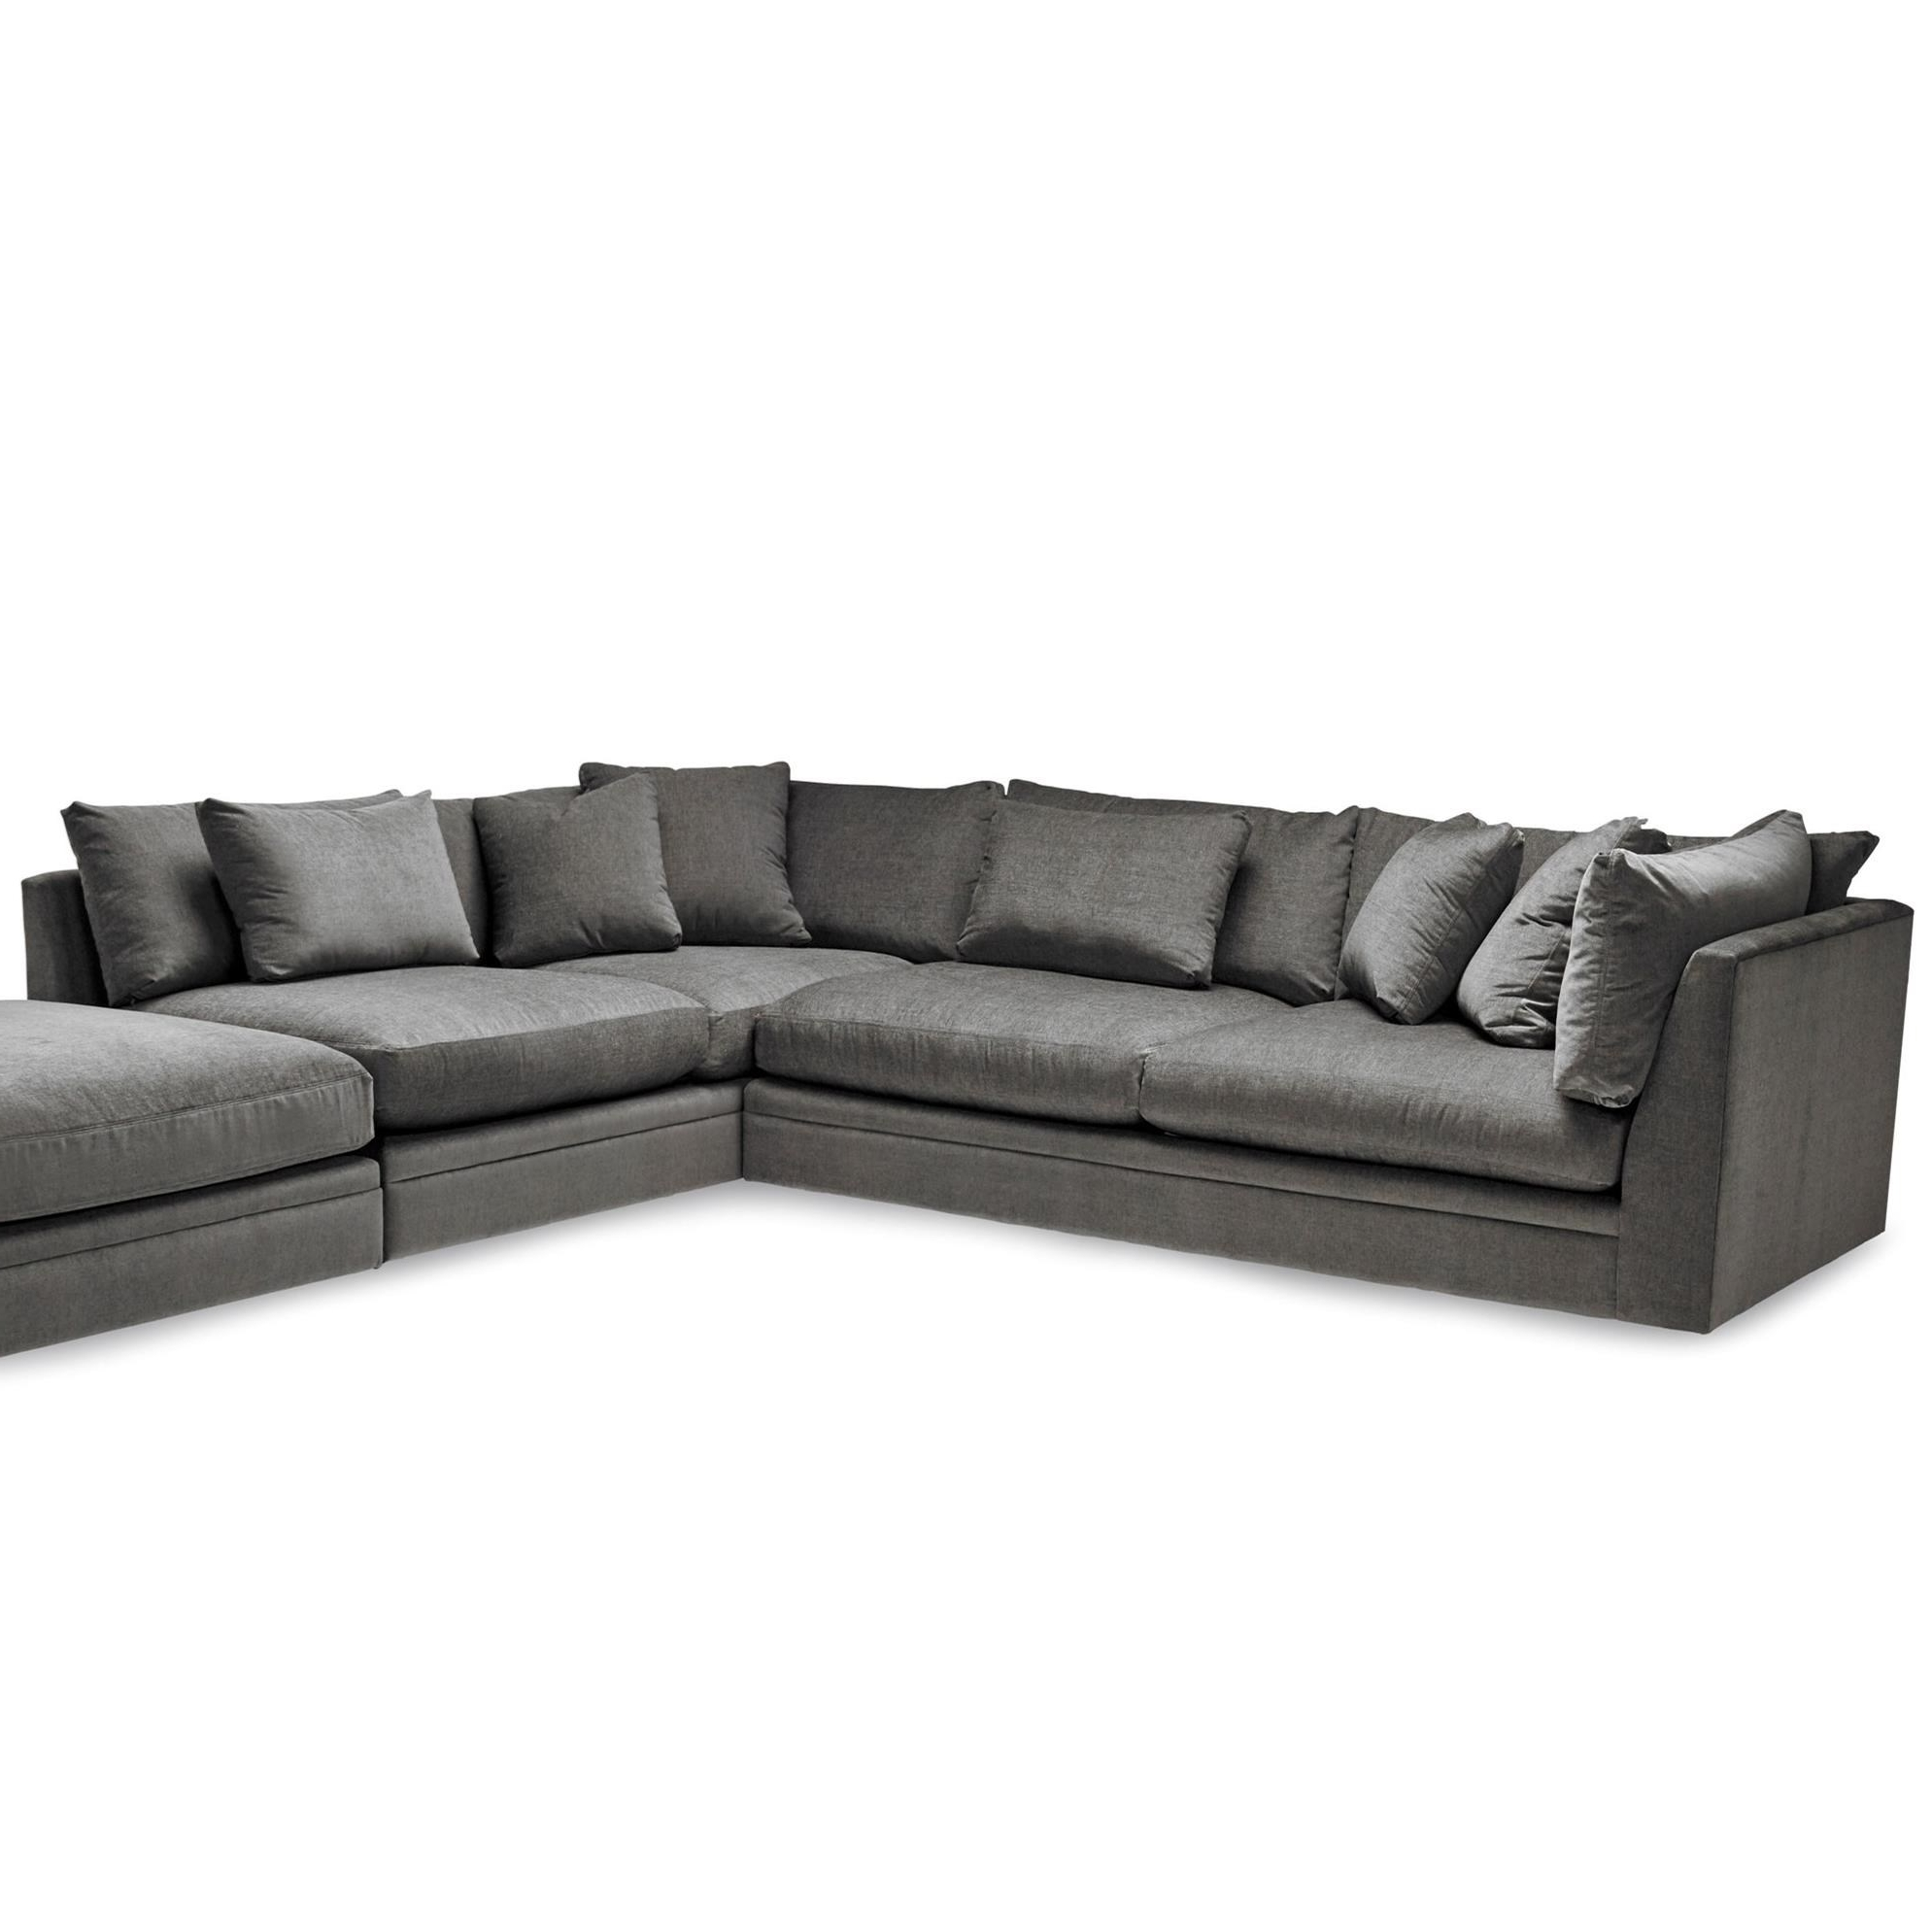 2019 1414 Two Piece Sectional Sofa With Scattered Back Pillows (View 11 of 20)